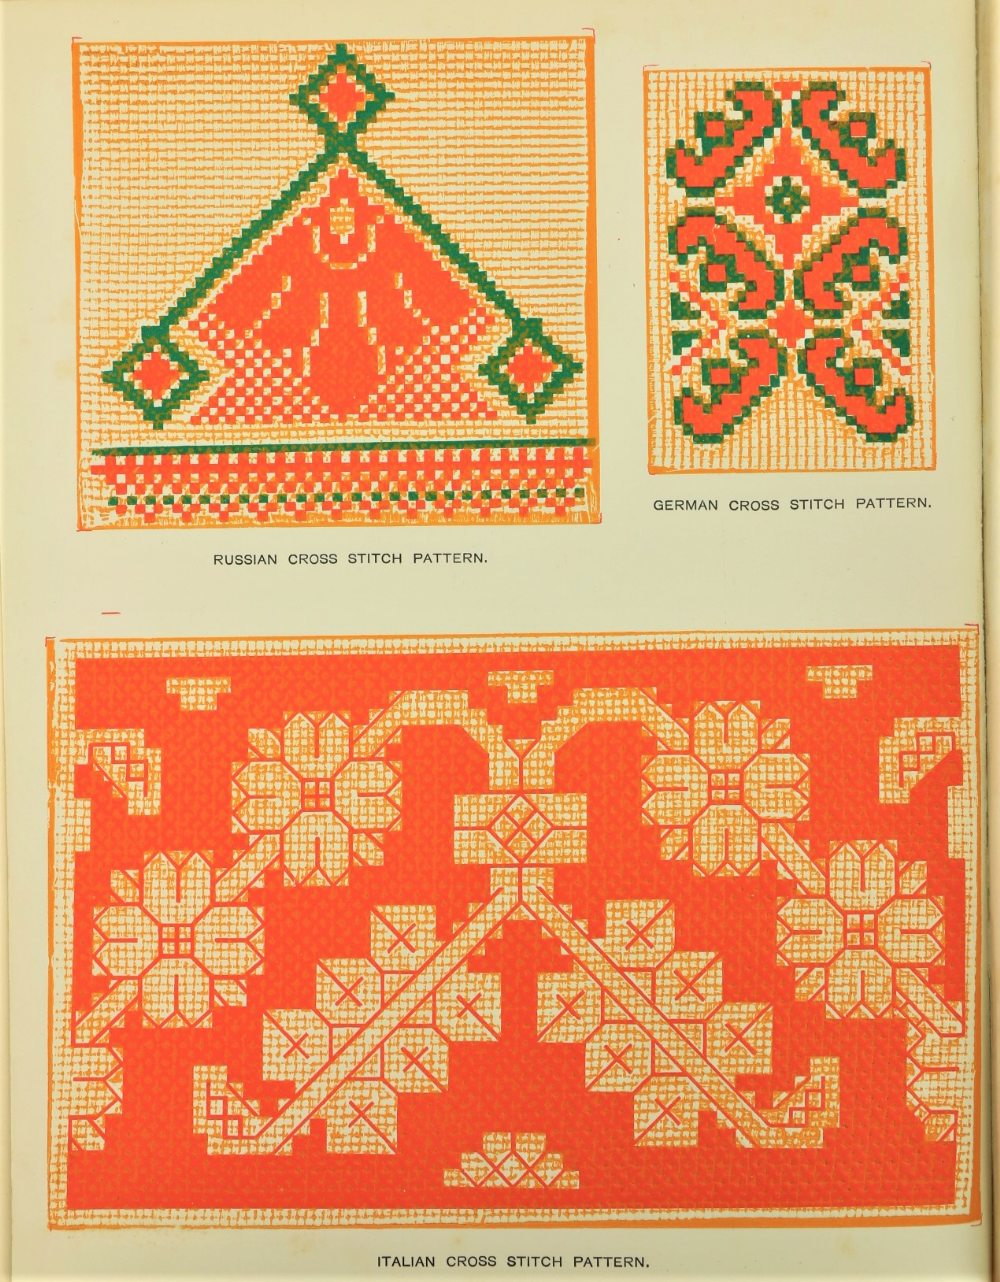 Caulfield (S.F.A.) & Seward (B.C.)TheDictionary of Needlework, thick 4to Lond. n.d.Second Edn., - Image 4 of 5